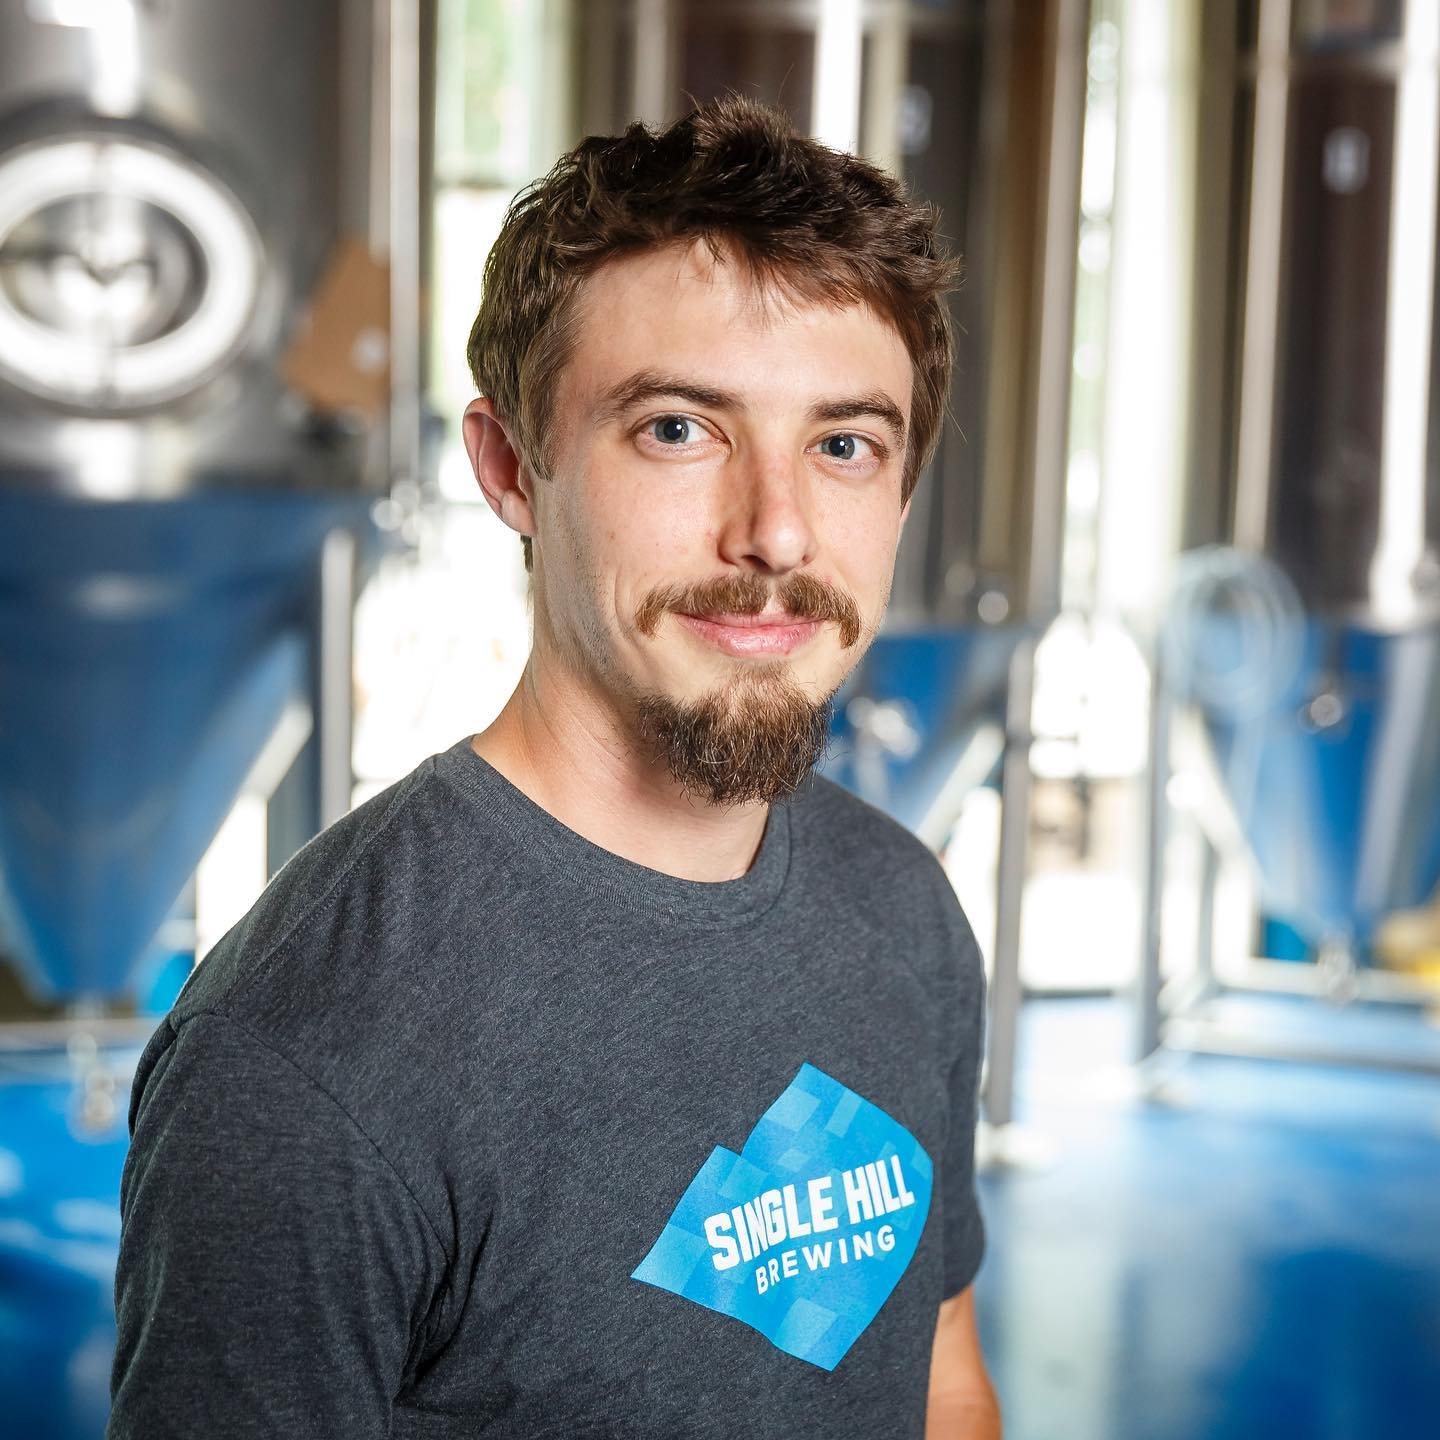 image of Zach Turner courtesy of Single Hill Brewing